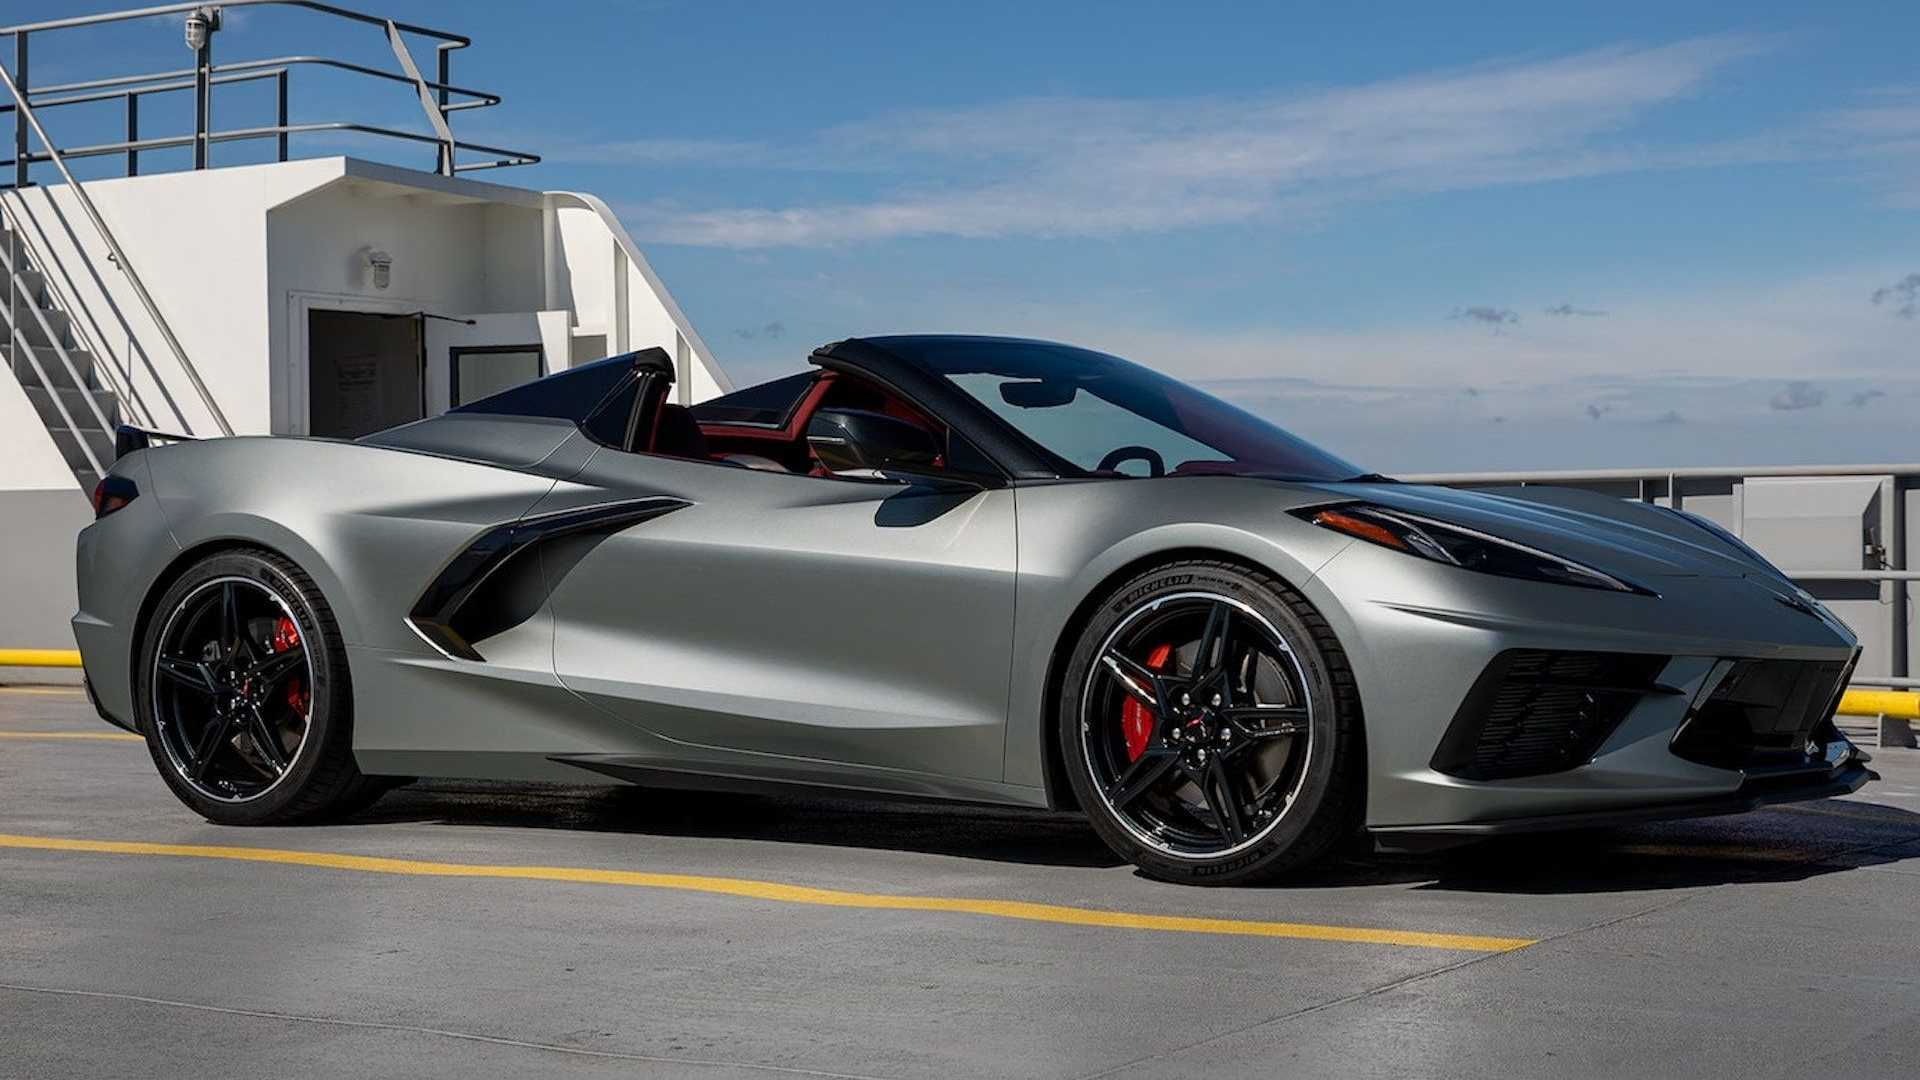 A view of one of the three colours available for the 2022 Chevrolet Corvette Stingray: a color called Hypersonic Grey